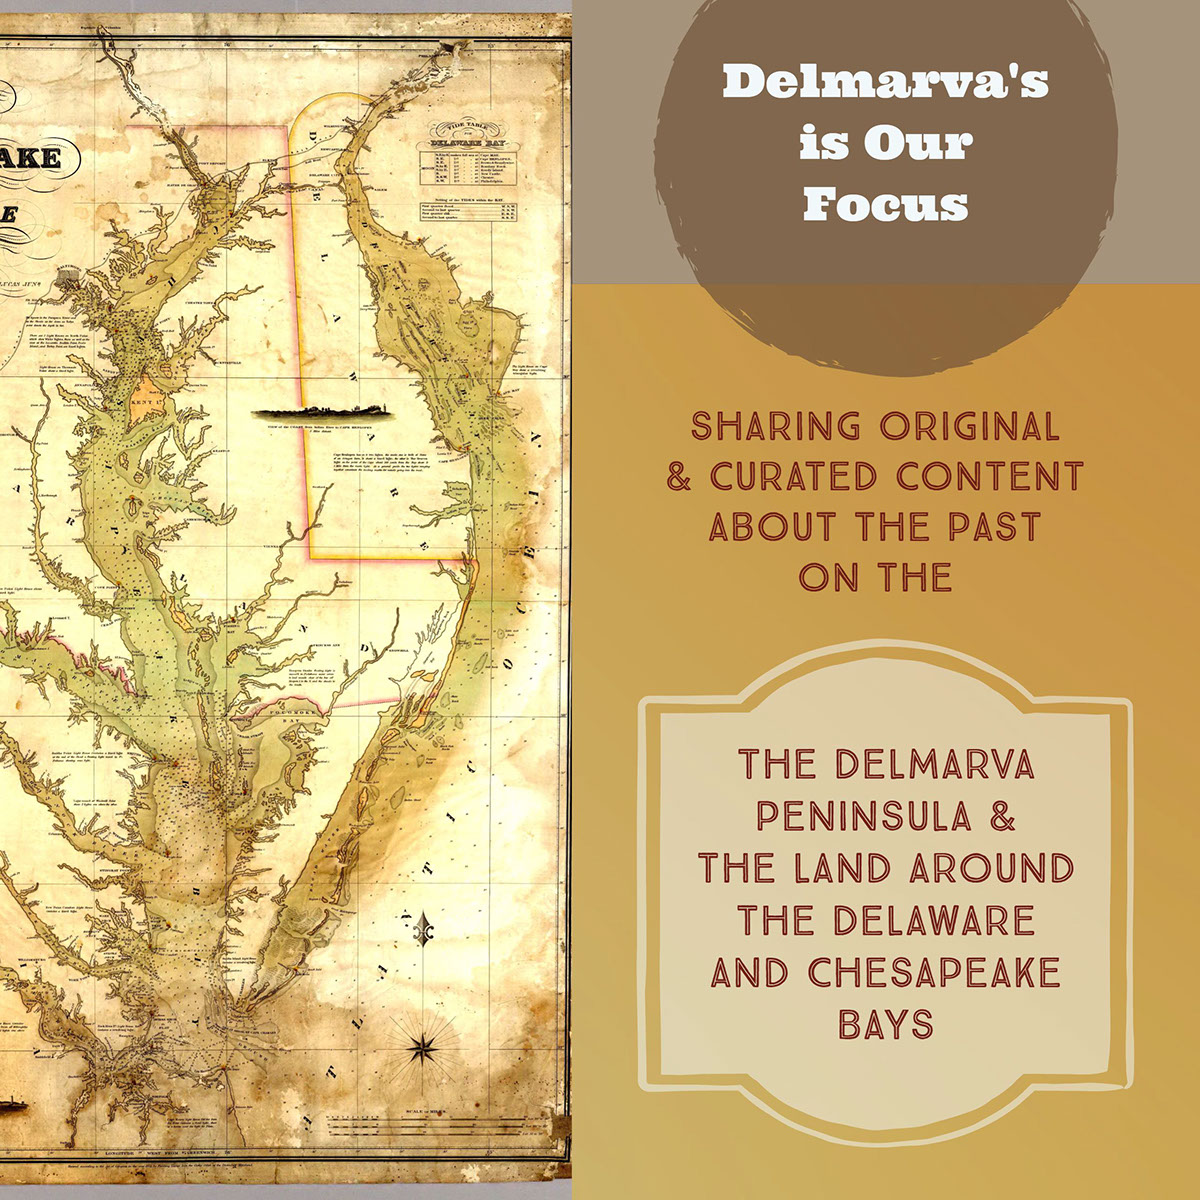 The Delmarva Peninsula & the land around the Delaware and Chesapeake Bays